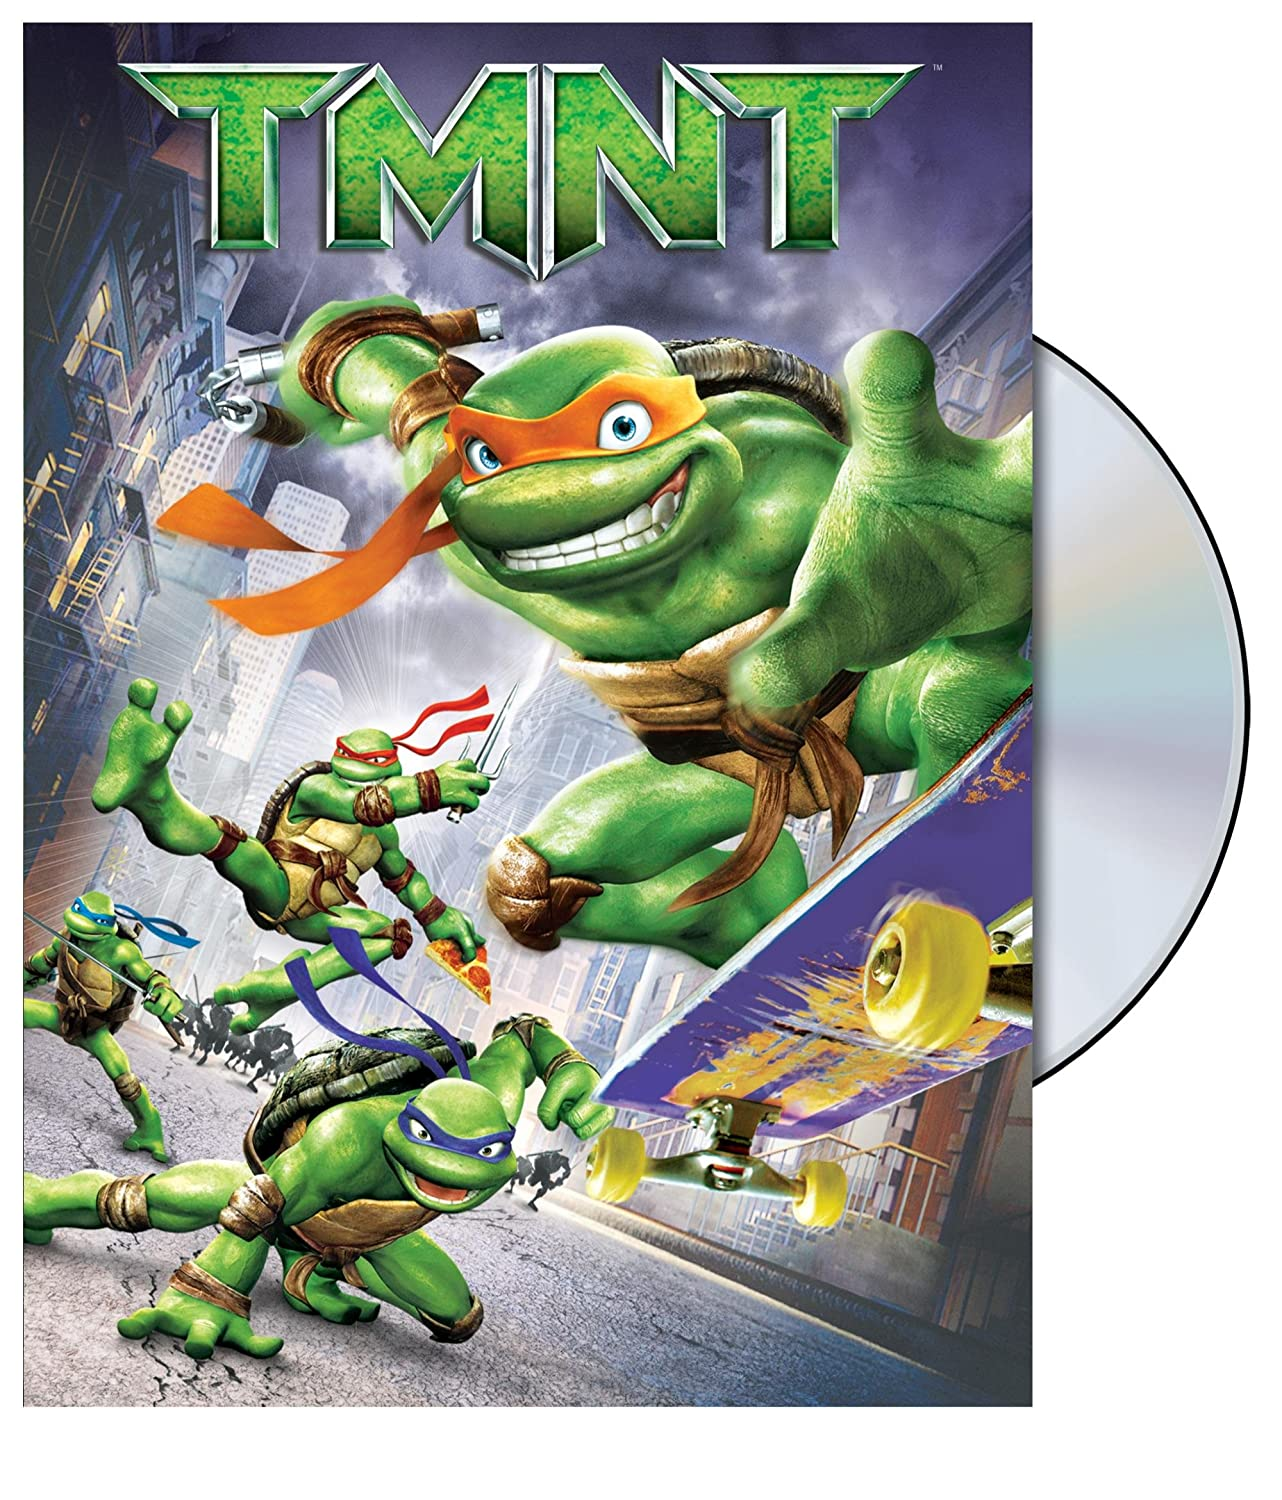 Amazon.com: TMNT: Chris Evans, Sarah Michelle Gellar, Mako ...